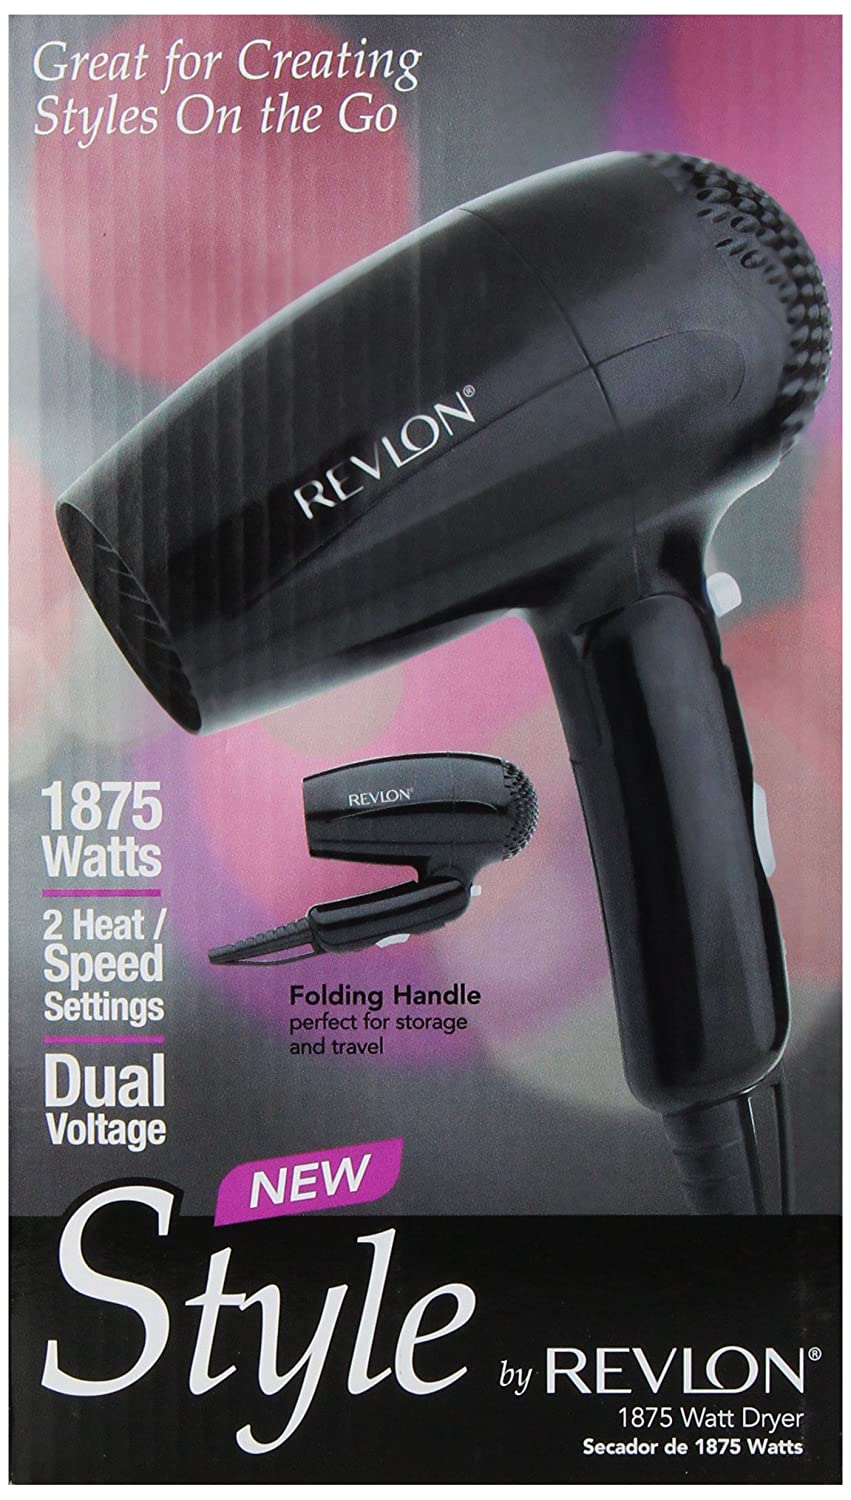 Amazon.com: Revlon 1875 Watt Compact Stylist Dryer, Black (Model Rvdr5033): Prime Pantry